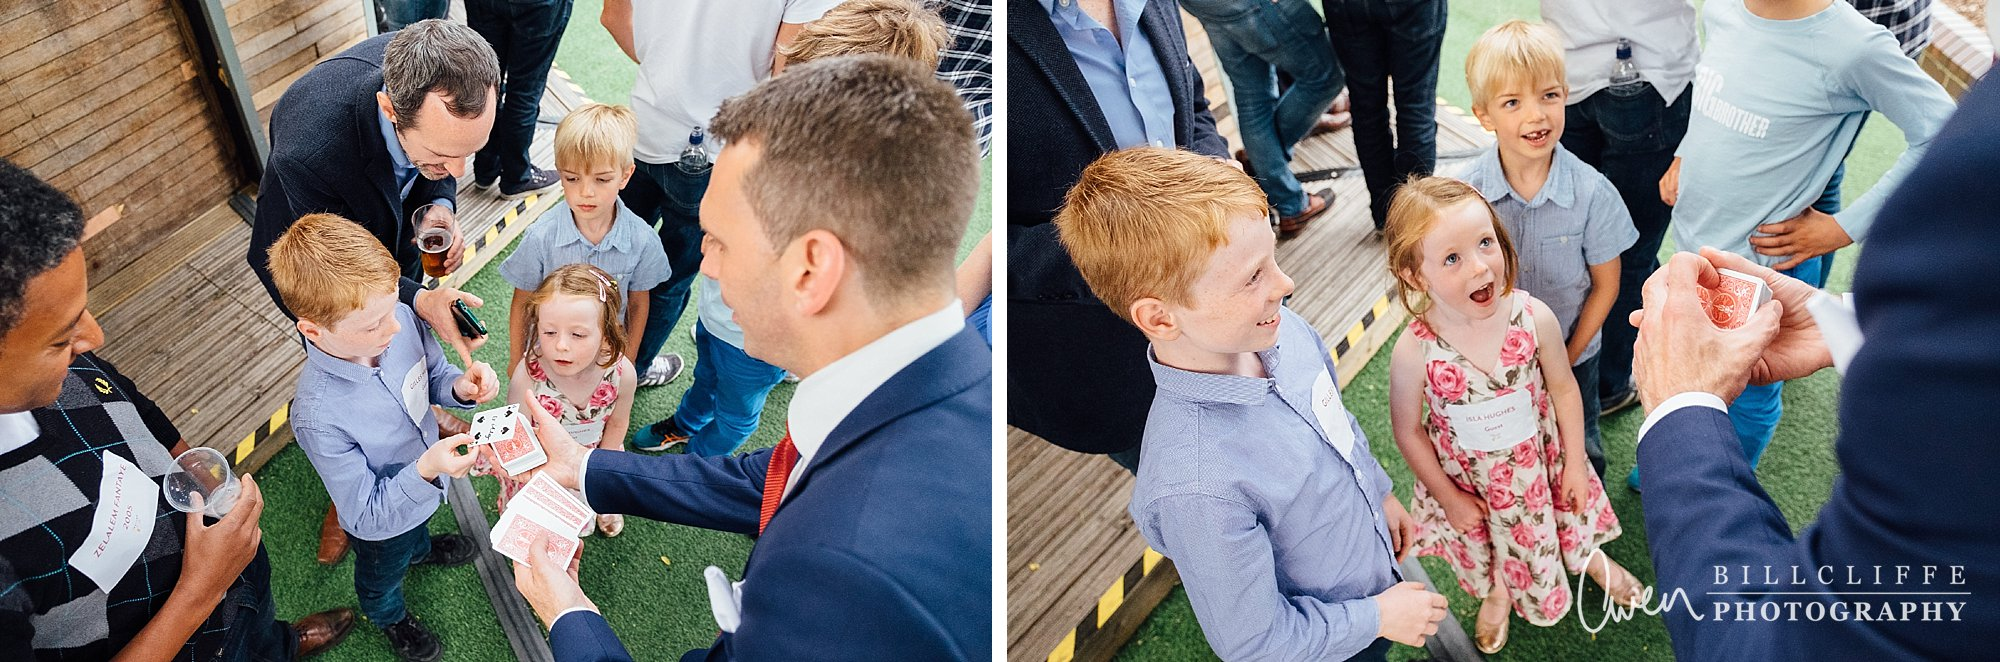 london wedding photographer magician lee smith 007 - Event Entertainer Spotlight: Lee Smith, Walkabout Magician